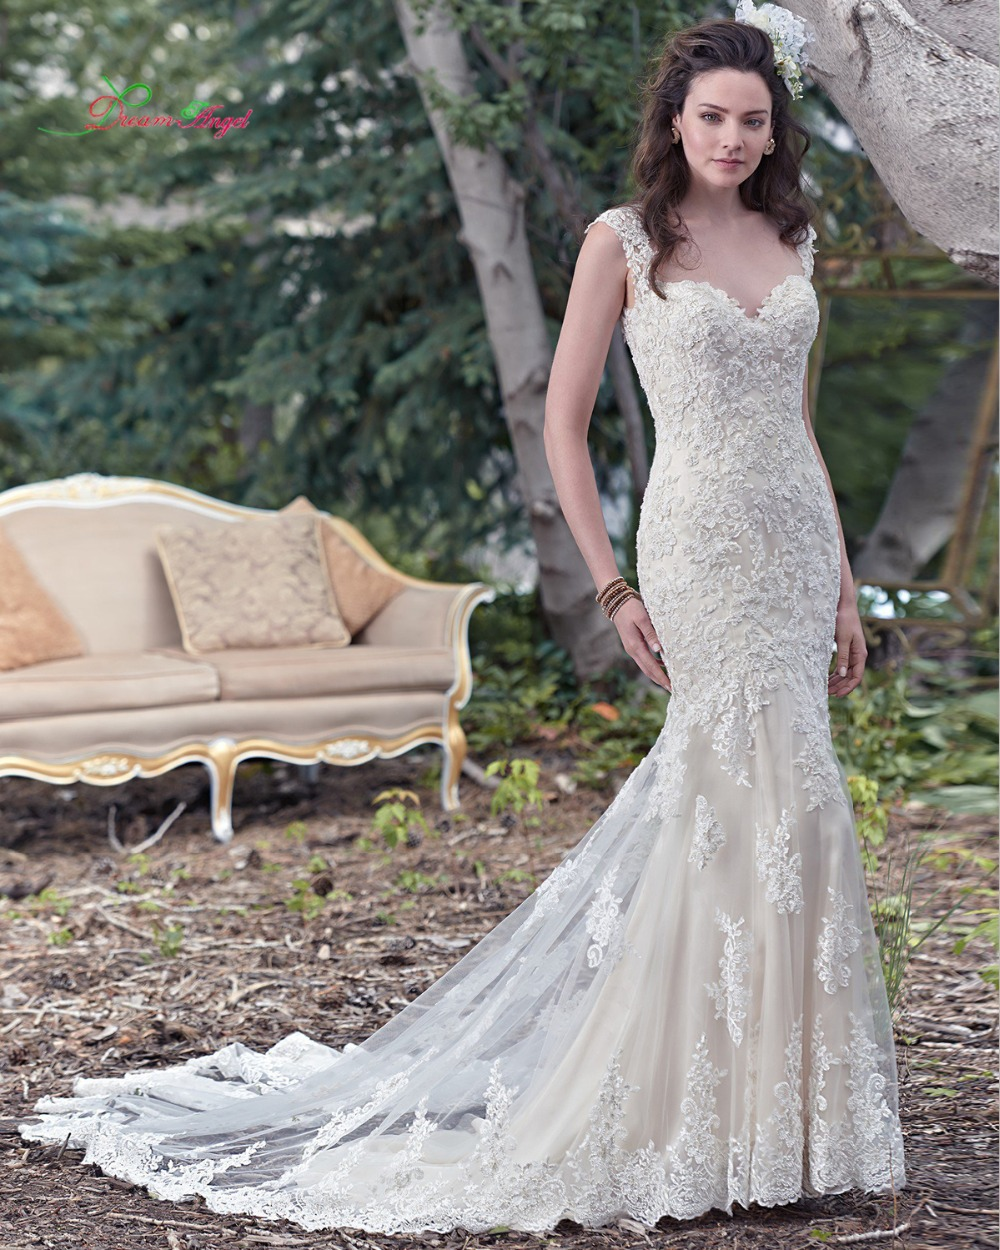 compare s on backless wedding dress designers online